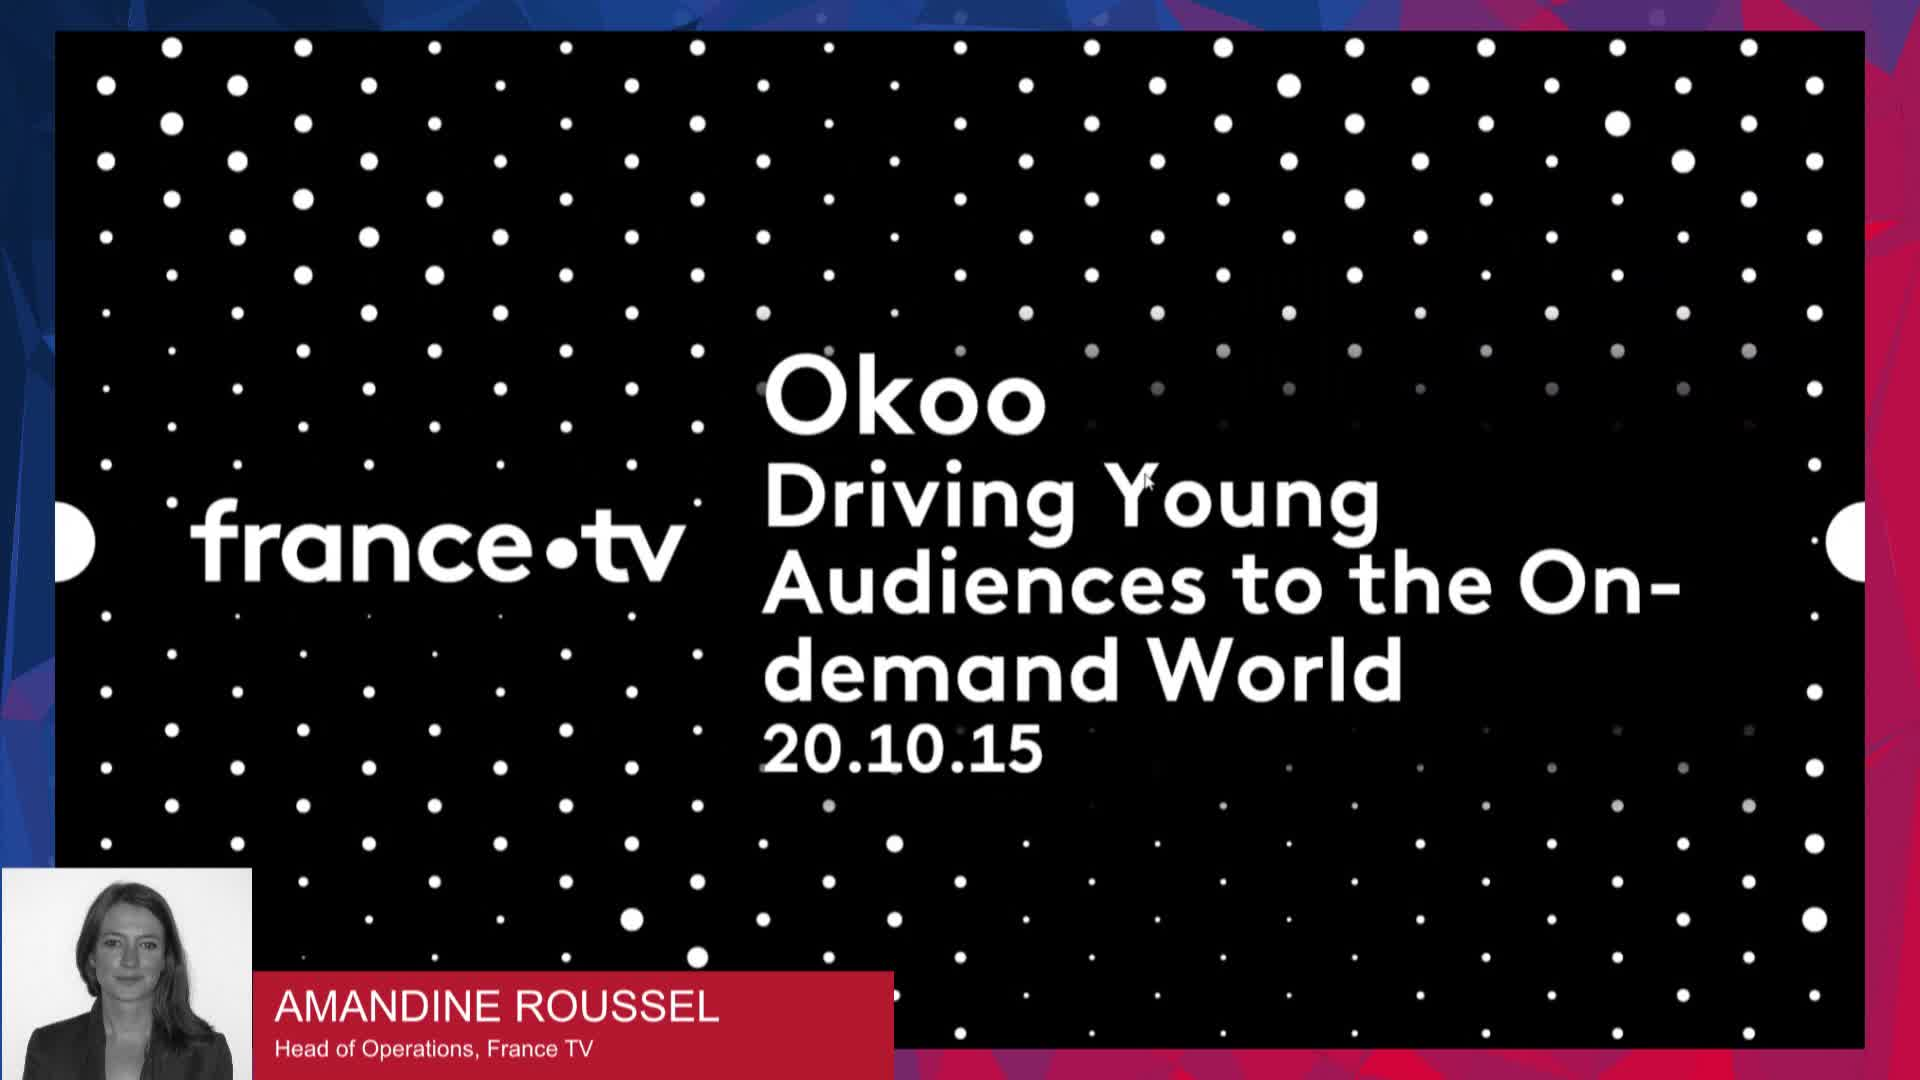 Okoo, Driving Young Audiences to the On-demand World